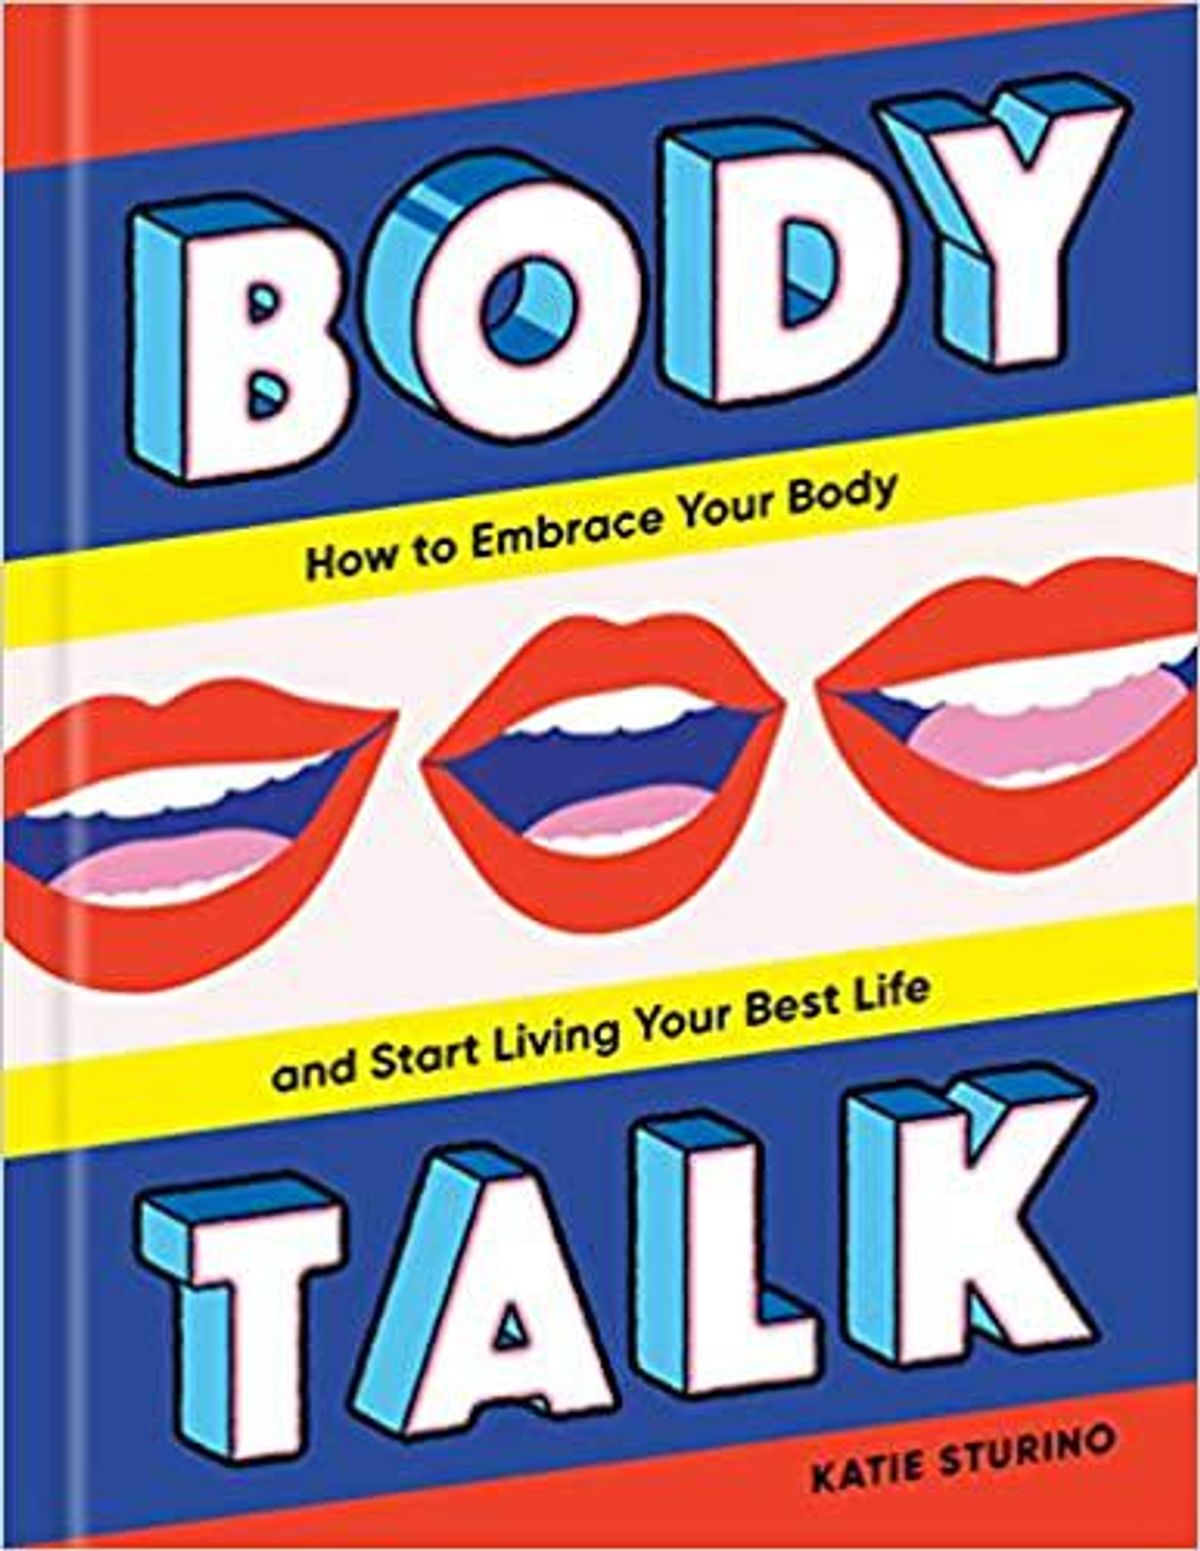 katie sturino body talk: how to embrace your body and start living your best life